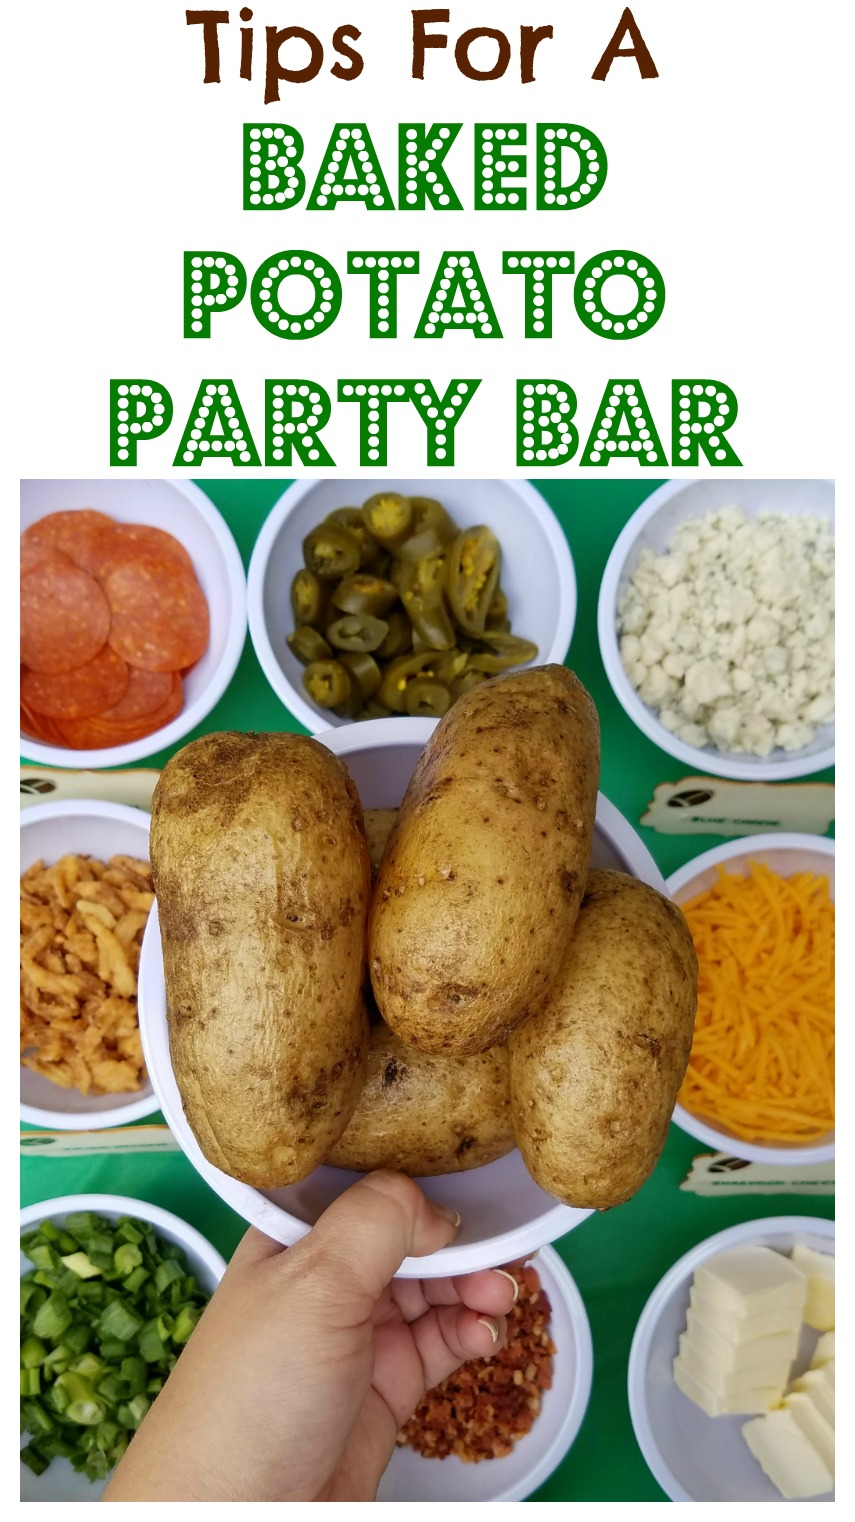 Football Party With A Baked Potato Bar - Making Time for Mommy